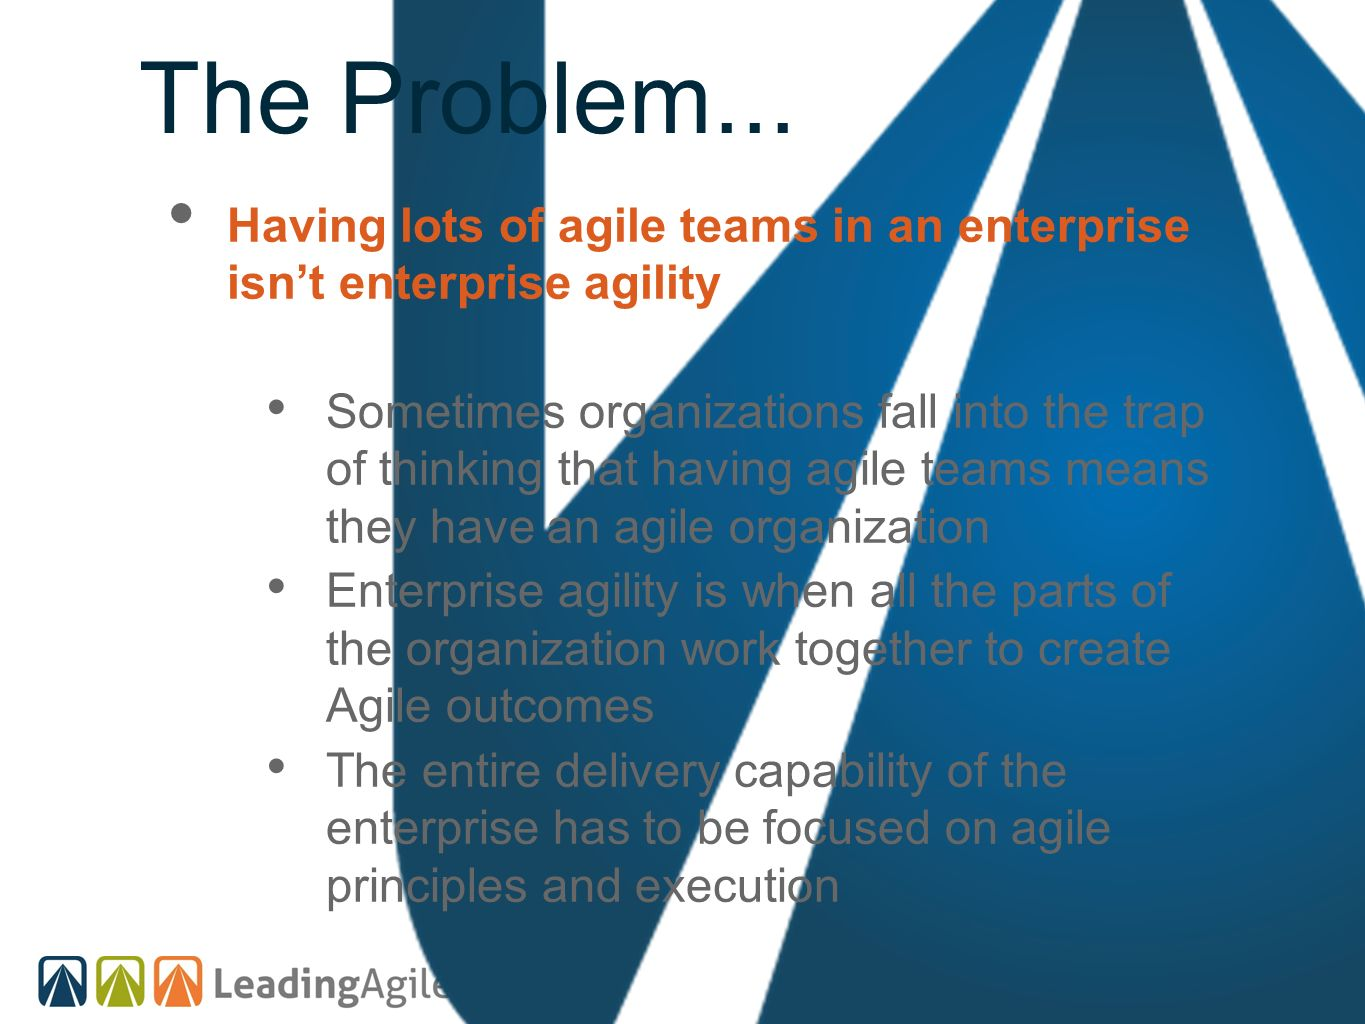 The Problem... Having lots of agile teams in an enterprise isn't enterprise agility.